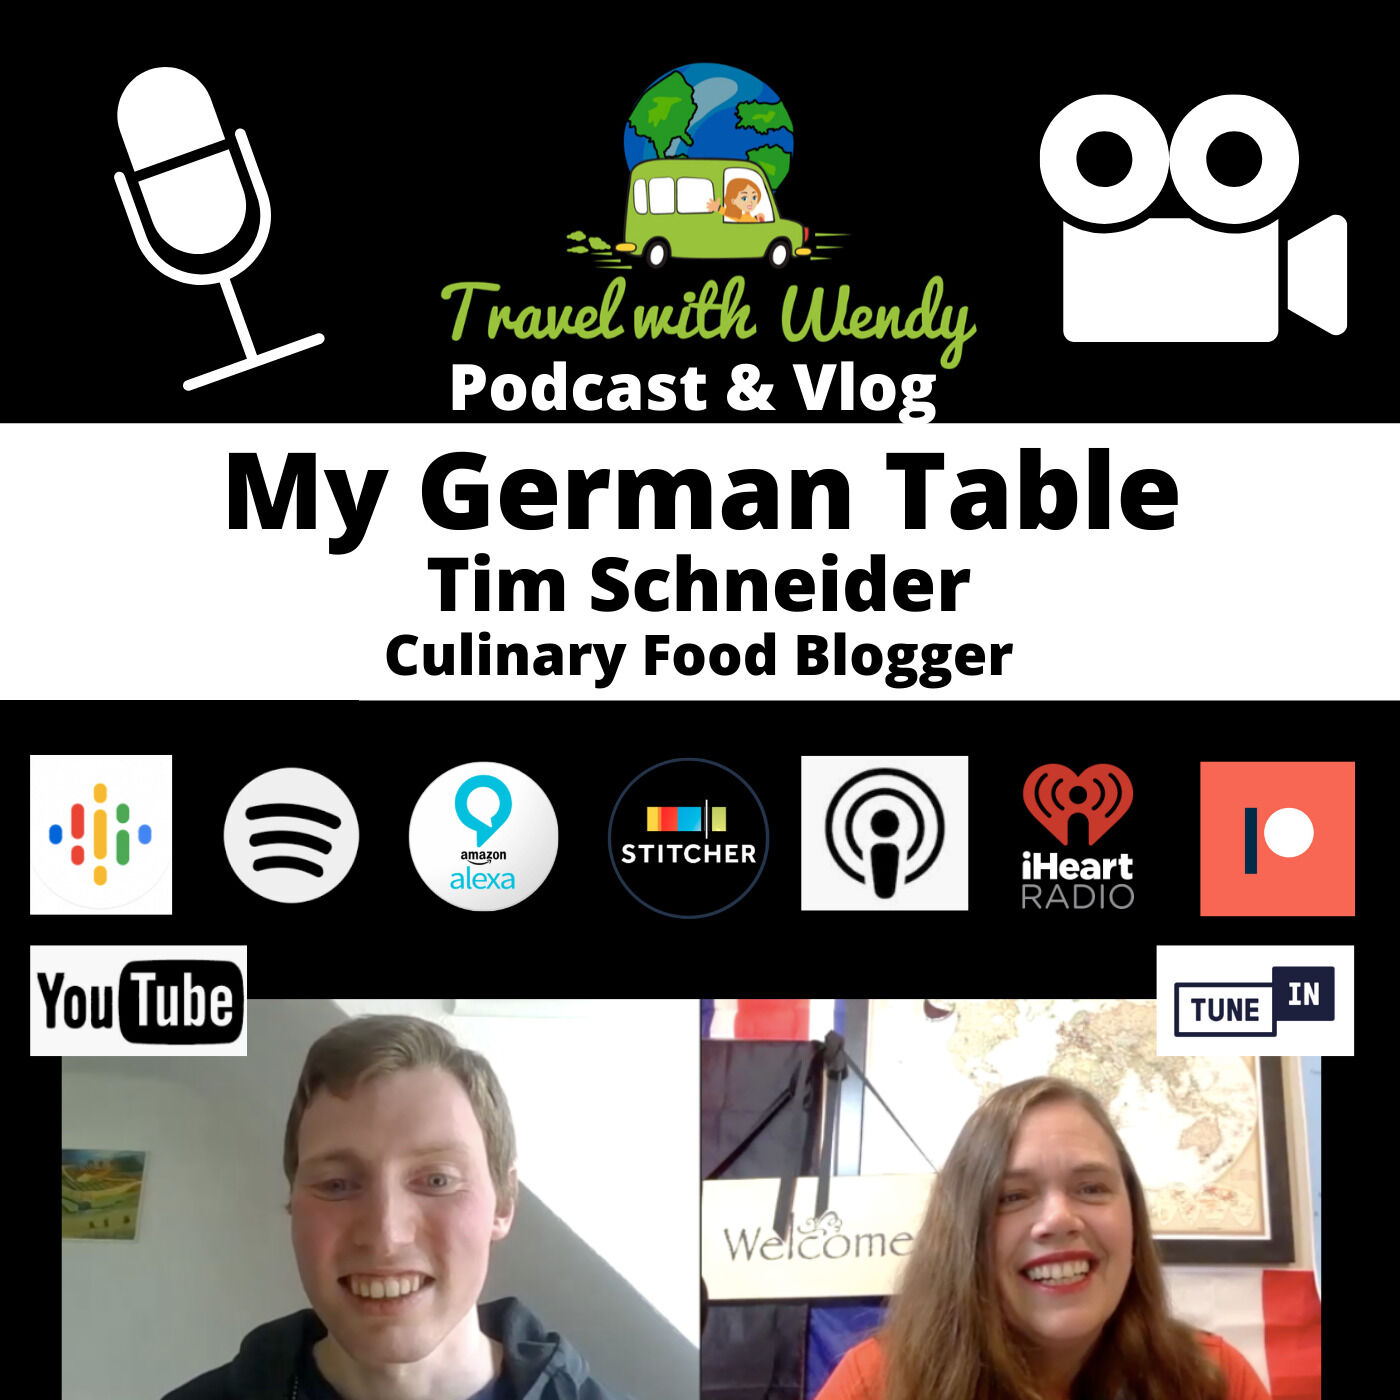 #18 My German Table - #FoodBlogger - Tim Schneider